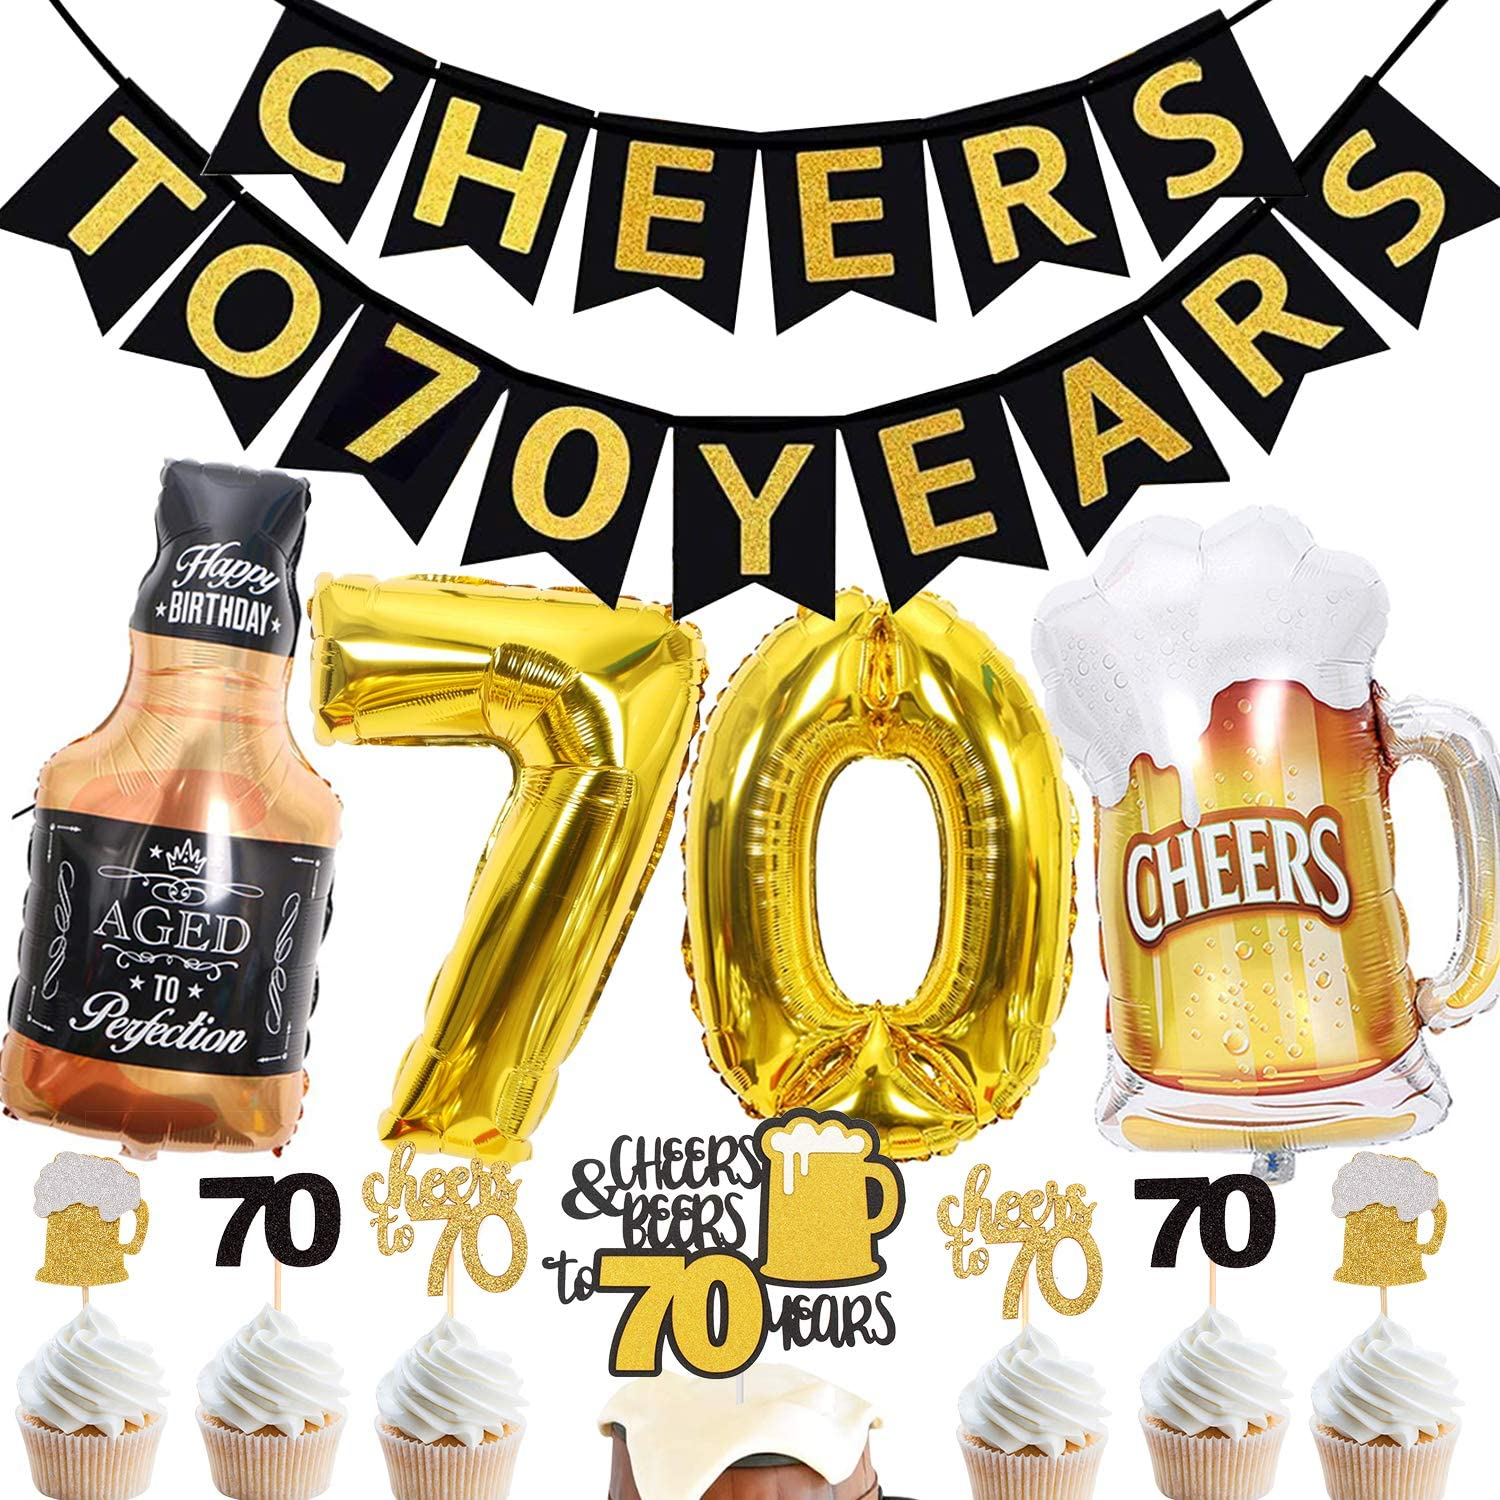 70th Birthday Decorations for Men/Women - Cheers to 70 Years Banner Balloon Sign - 70 Years Birthday Sign 70th Anniversary Decorations Supplies